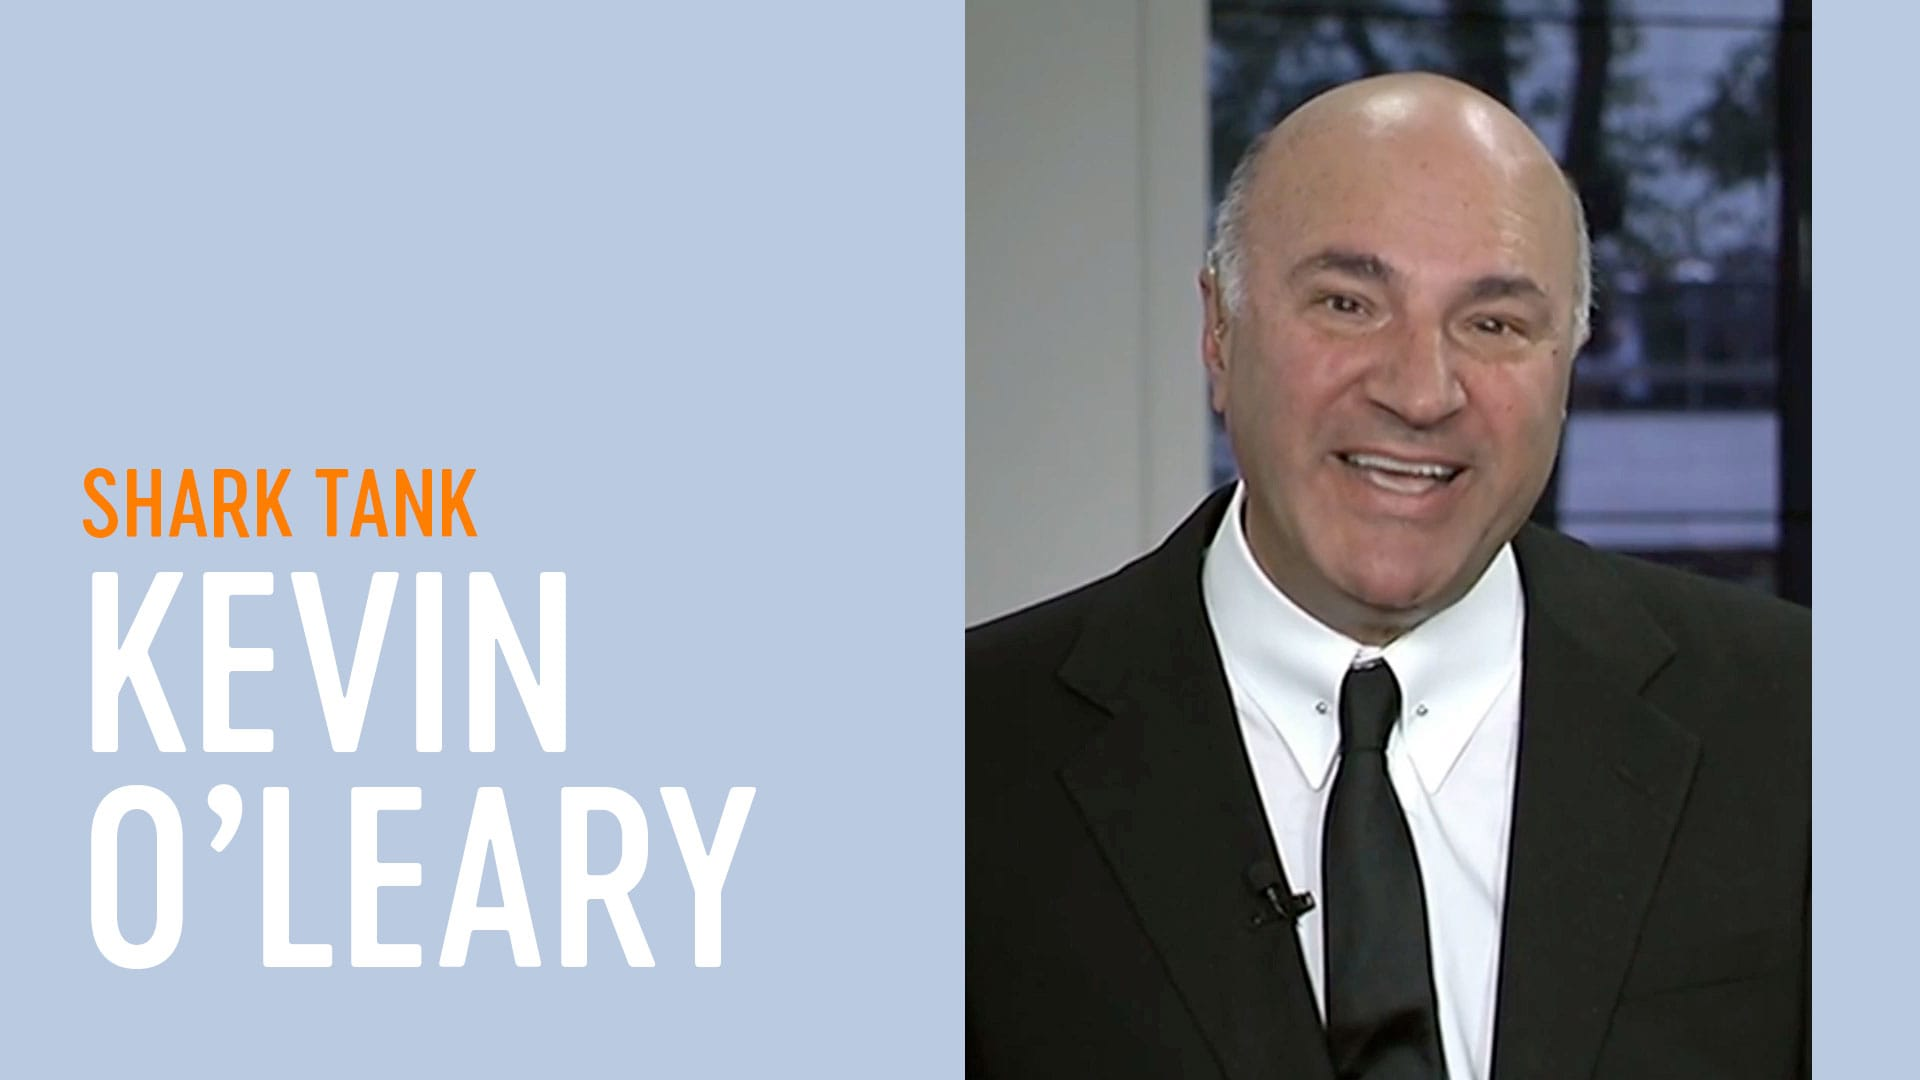 My Worst Job Interview | Kevin O'Leary